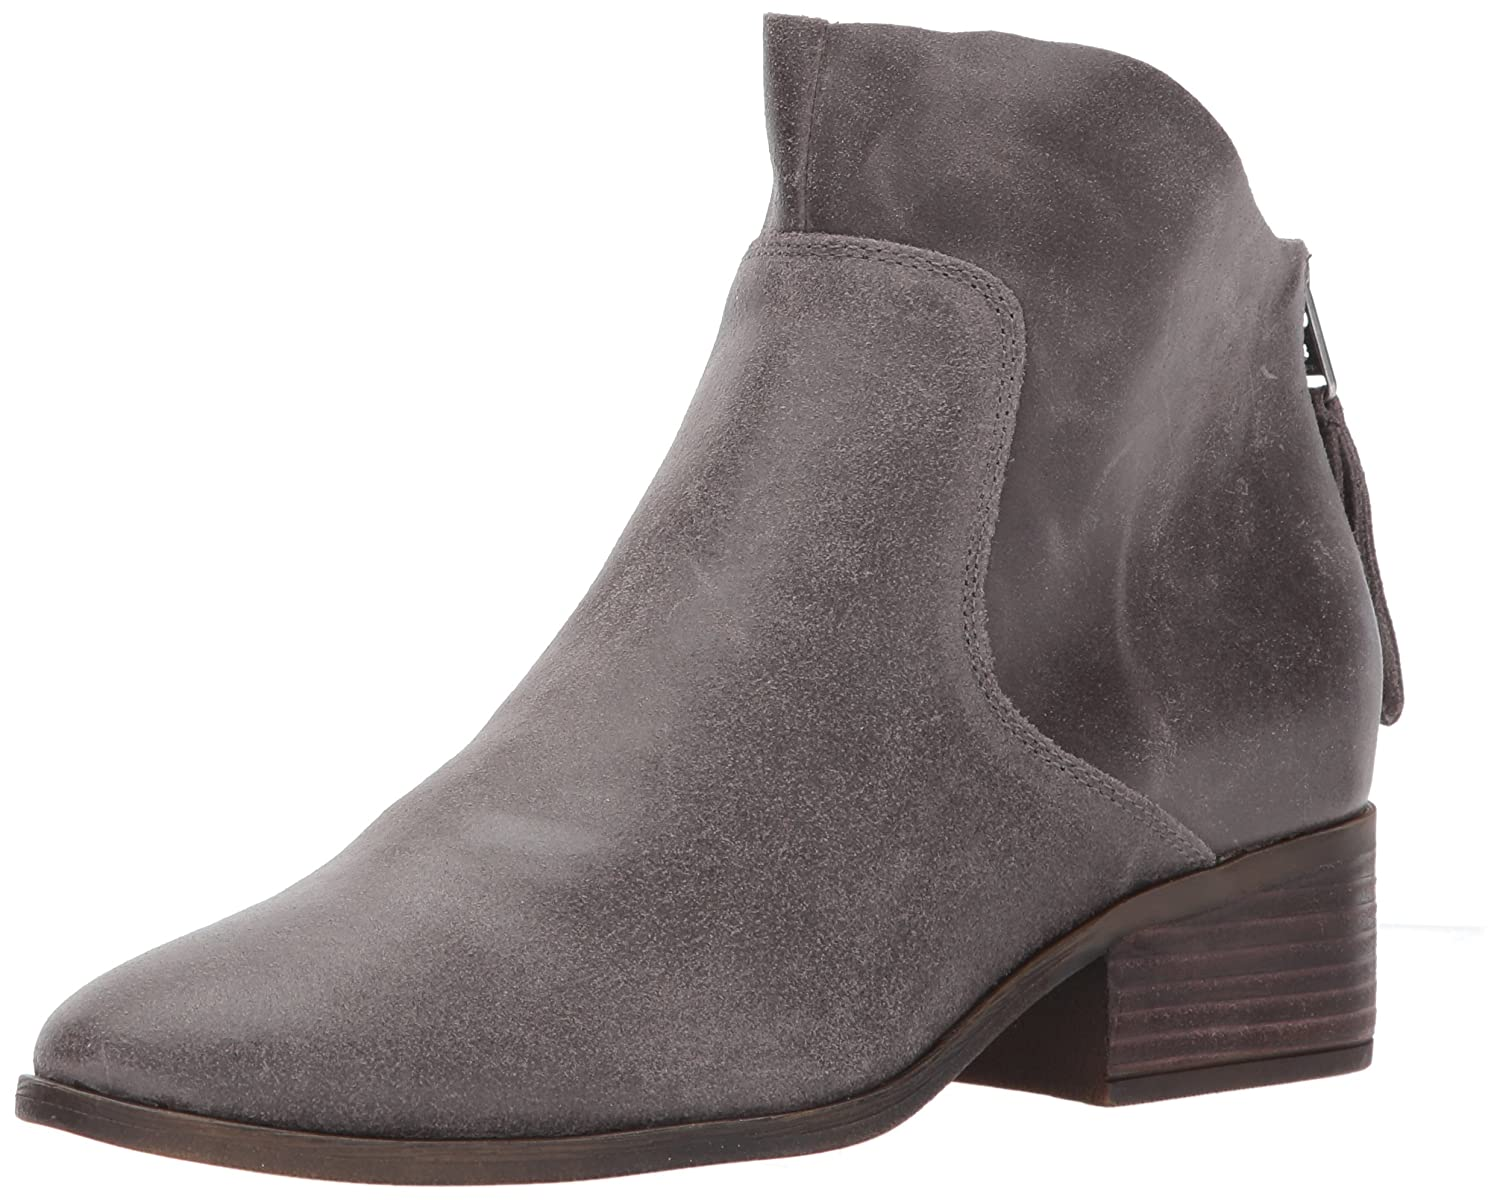 Lucky Brand Women's Lahela Fashion Boot B06XD4YL7G 12 M US|Storm